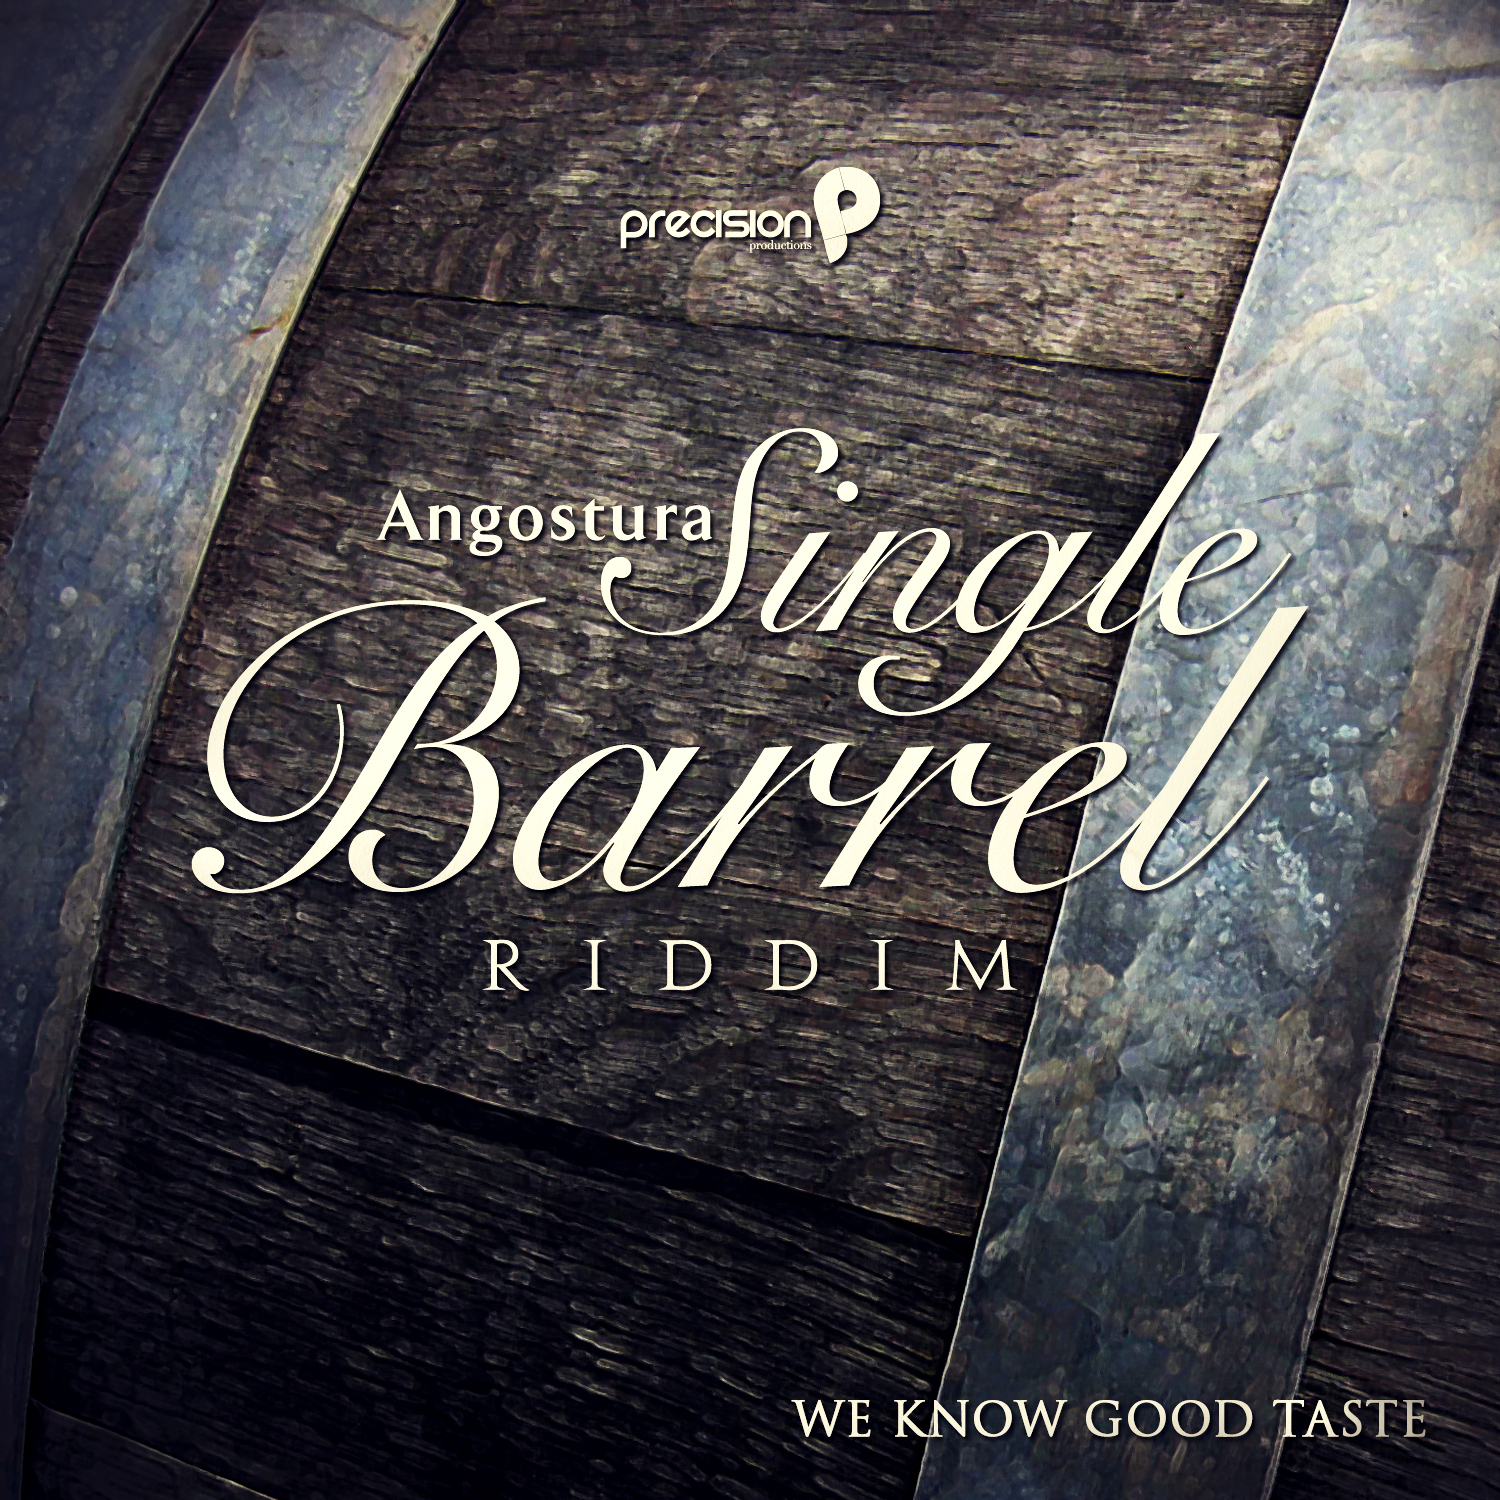 Single Barrel Riddim